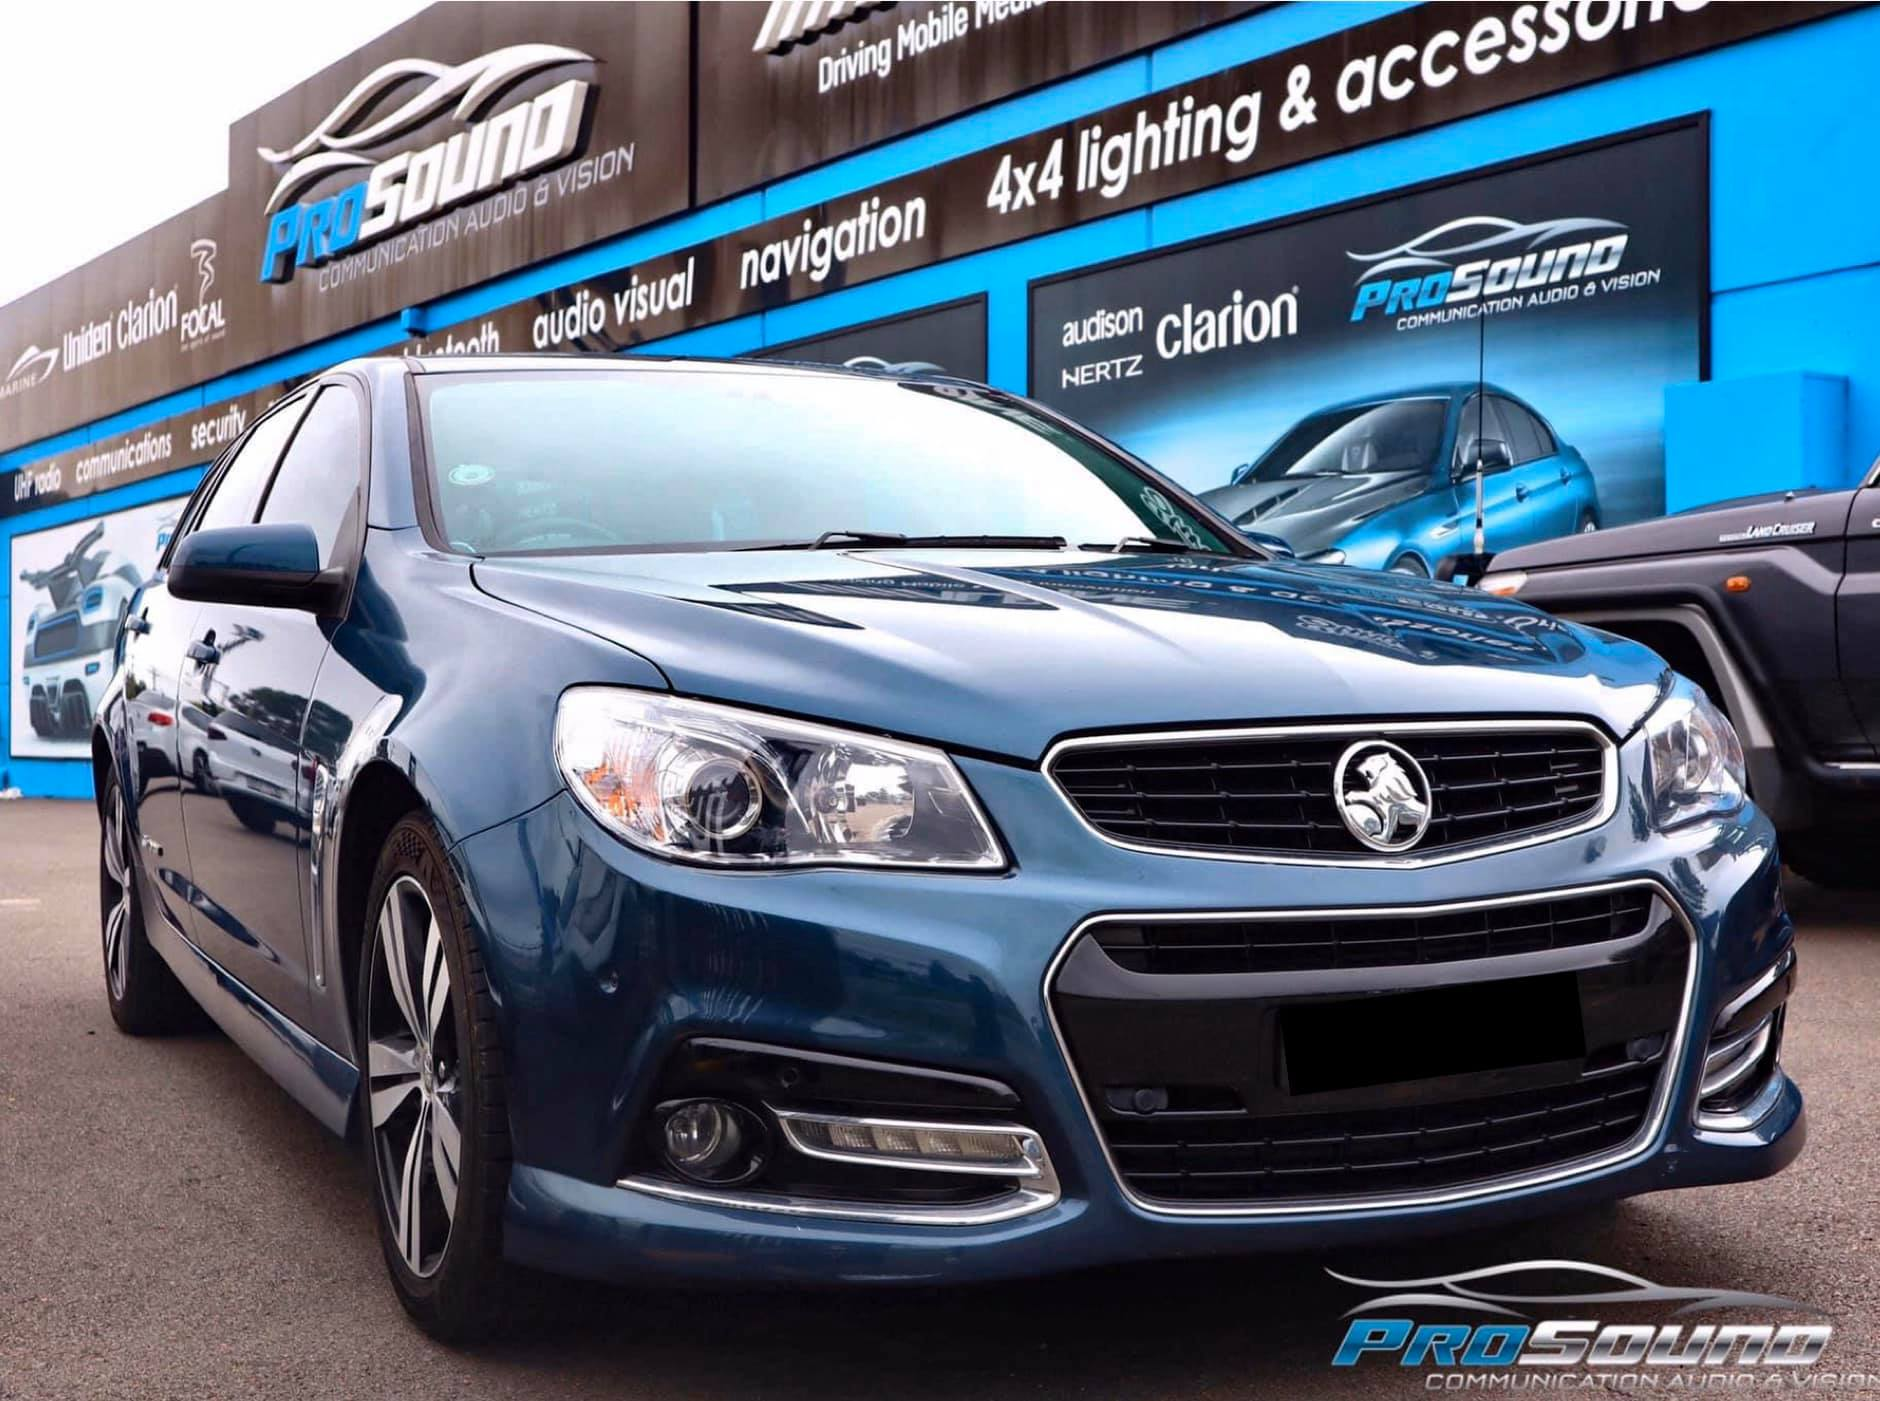 Alpine Perfect Fit into VF Commodore - https://www.newcastleprosound.com.au/wp-content/uploads/2021/02/VFcommodore.jpg